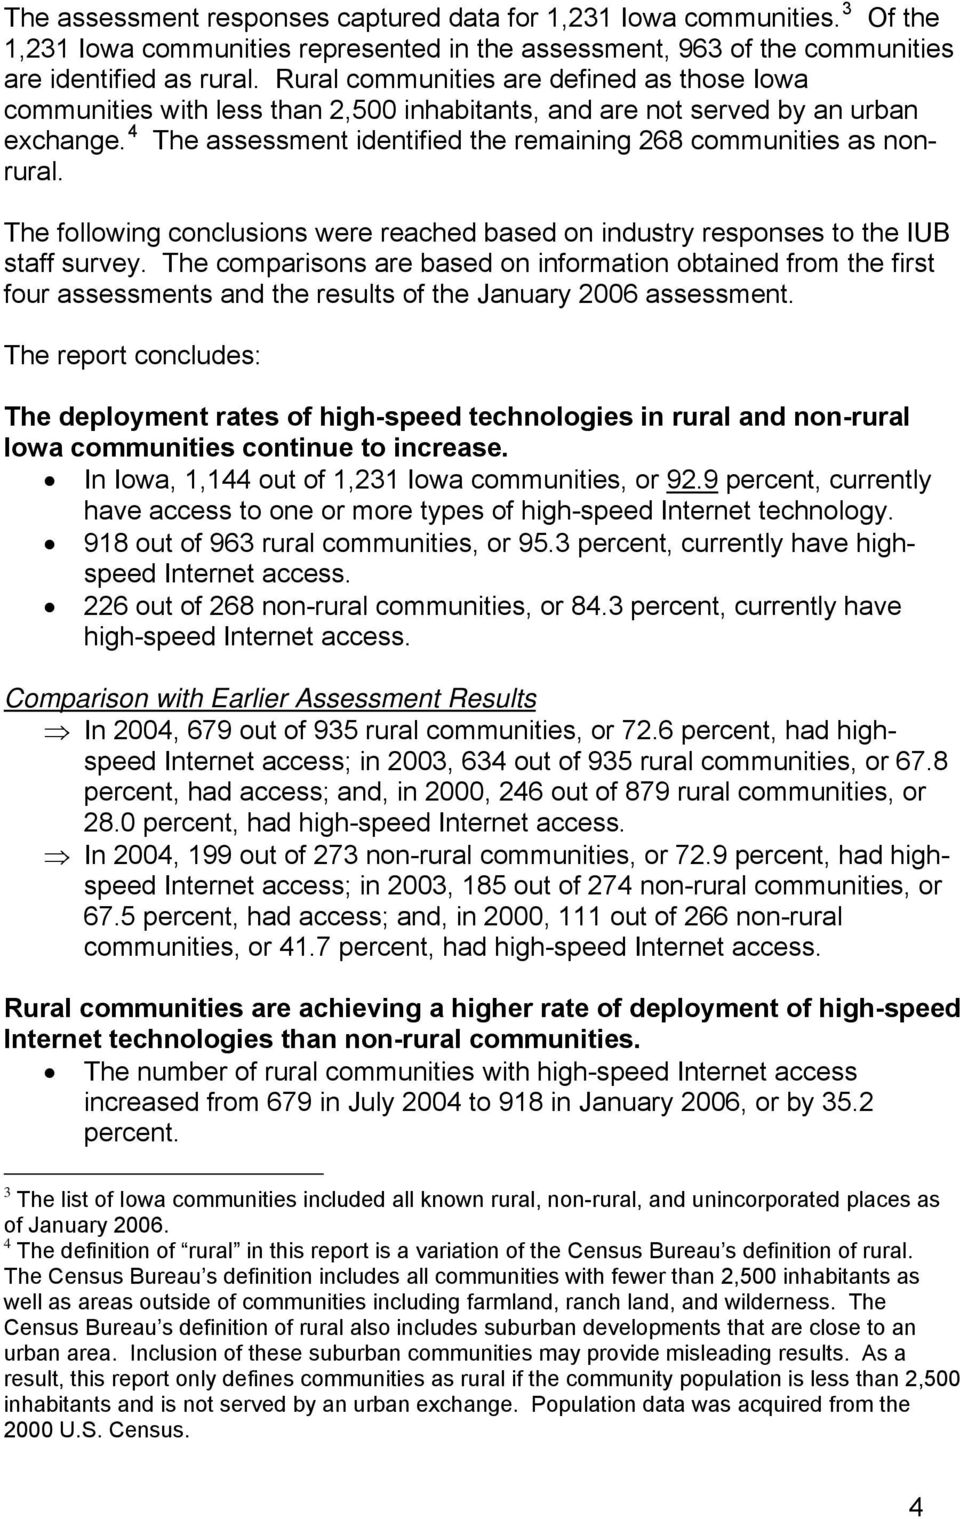 4 The assessment identified the remaining 268 communities as nonrural. The following conclusions were reached based on industry responses to the IUB staff survey.